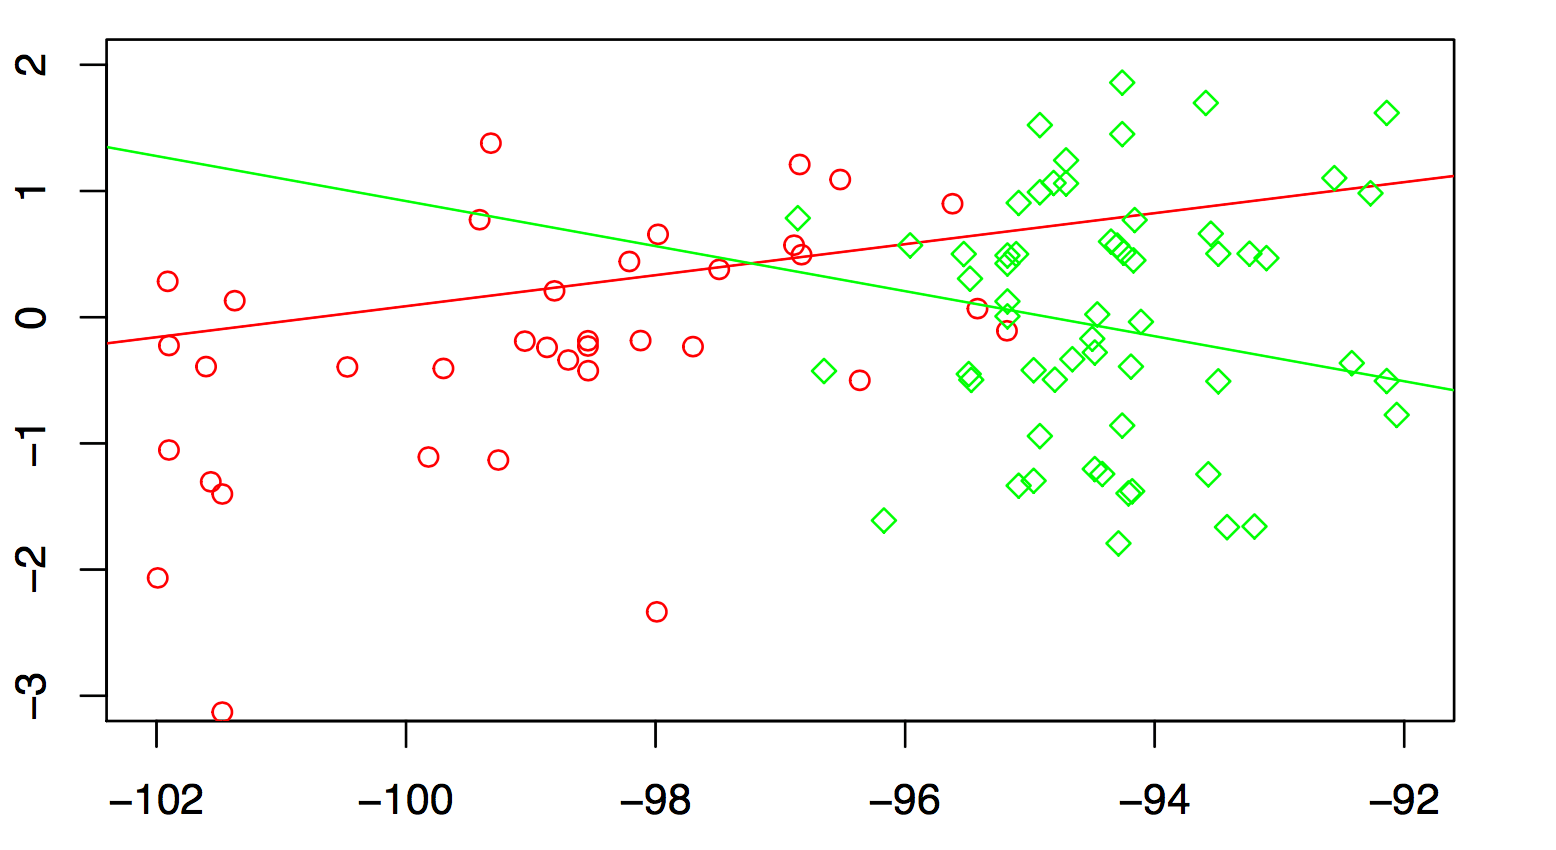 How To Make Two Specific Lengths Of Regression Lines In A Single Plot In R